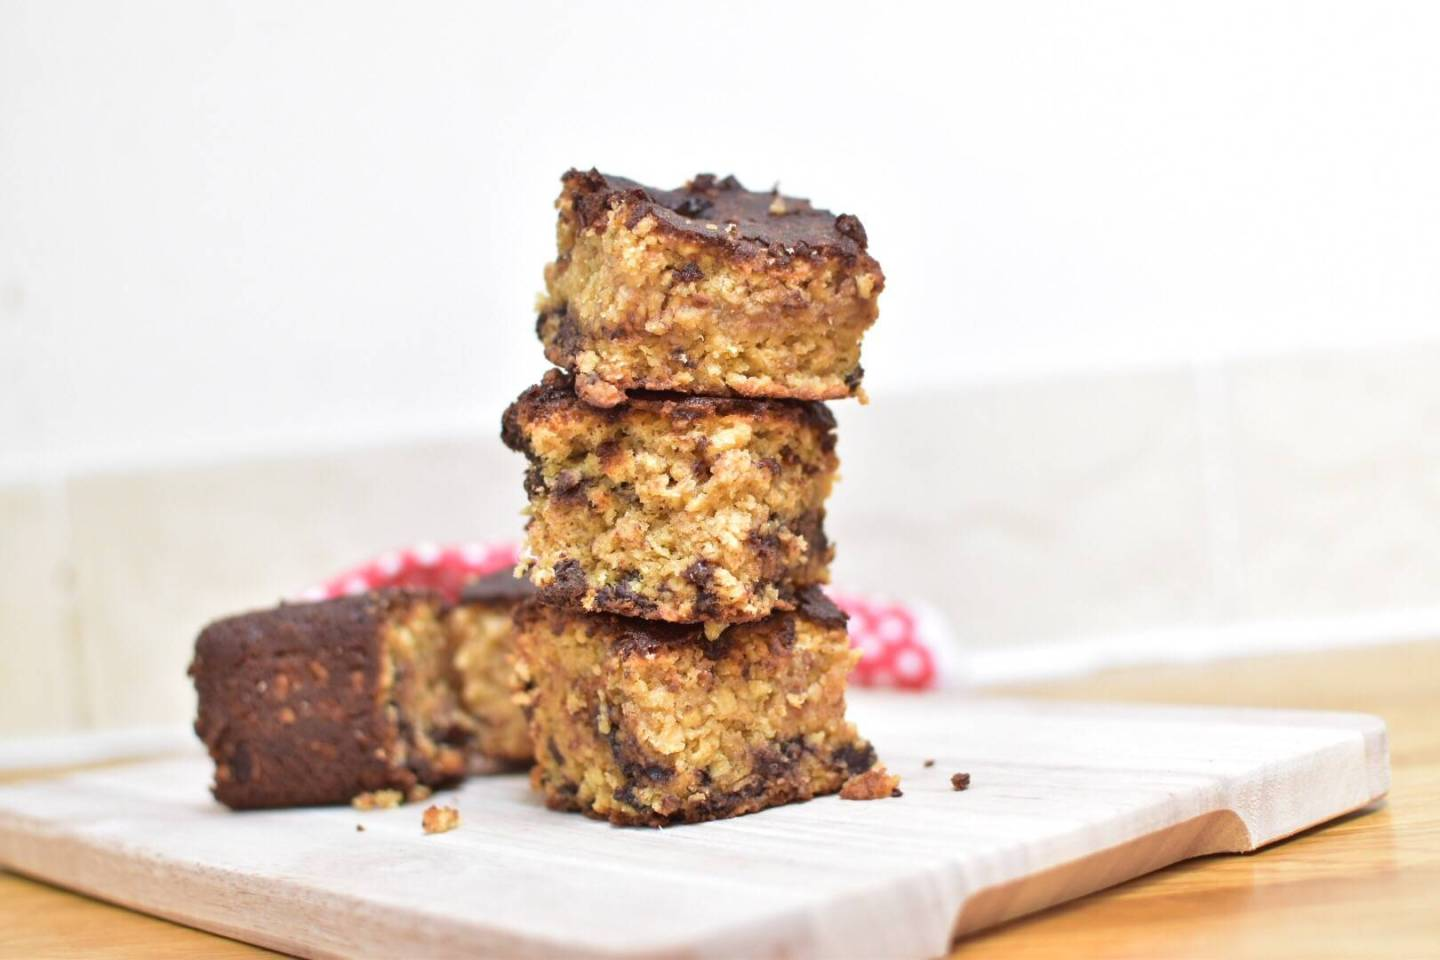 Chocolate Chip Oat Squares - A great after school snack